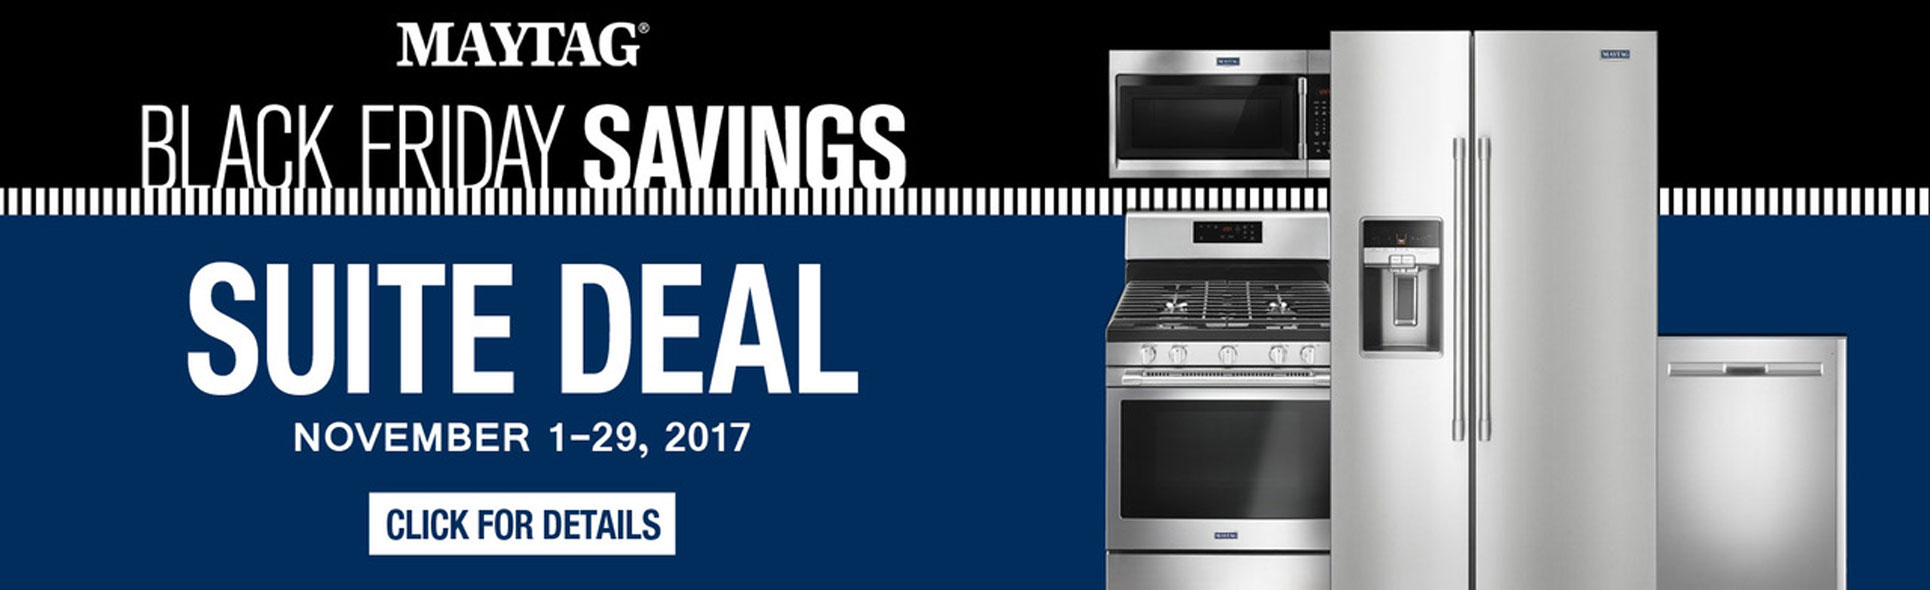 Maytag Black Friday Suite Deals